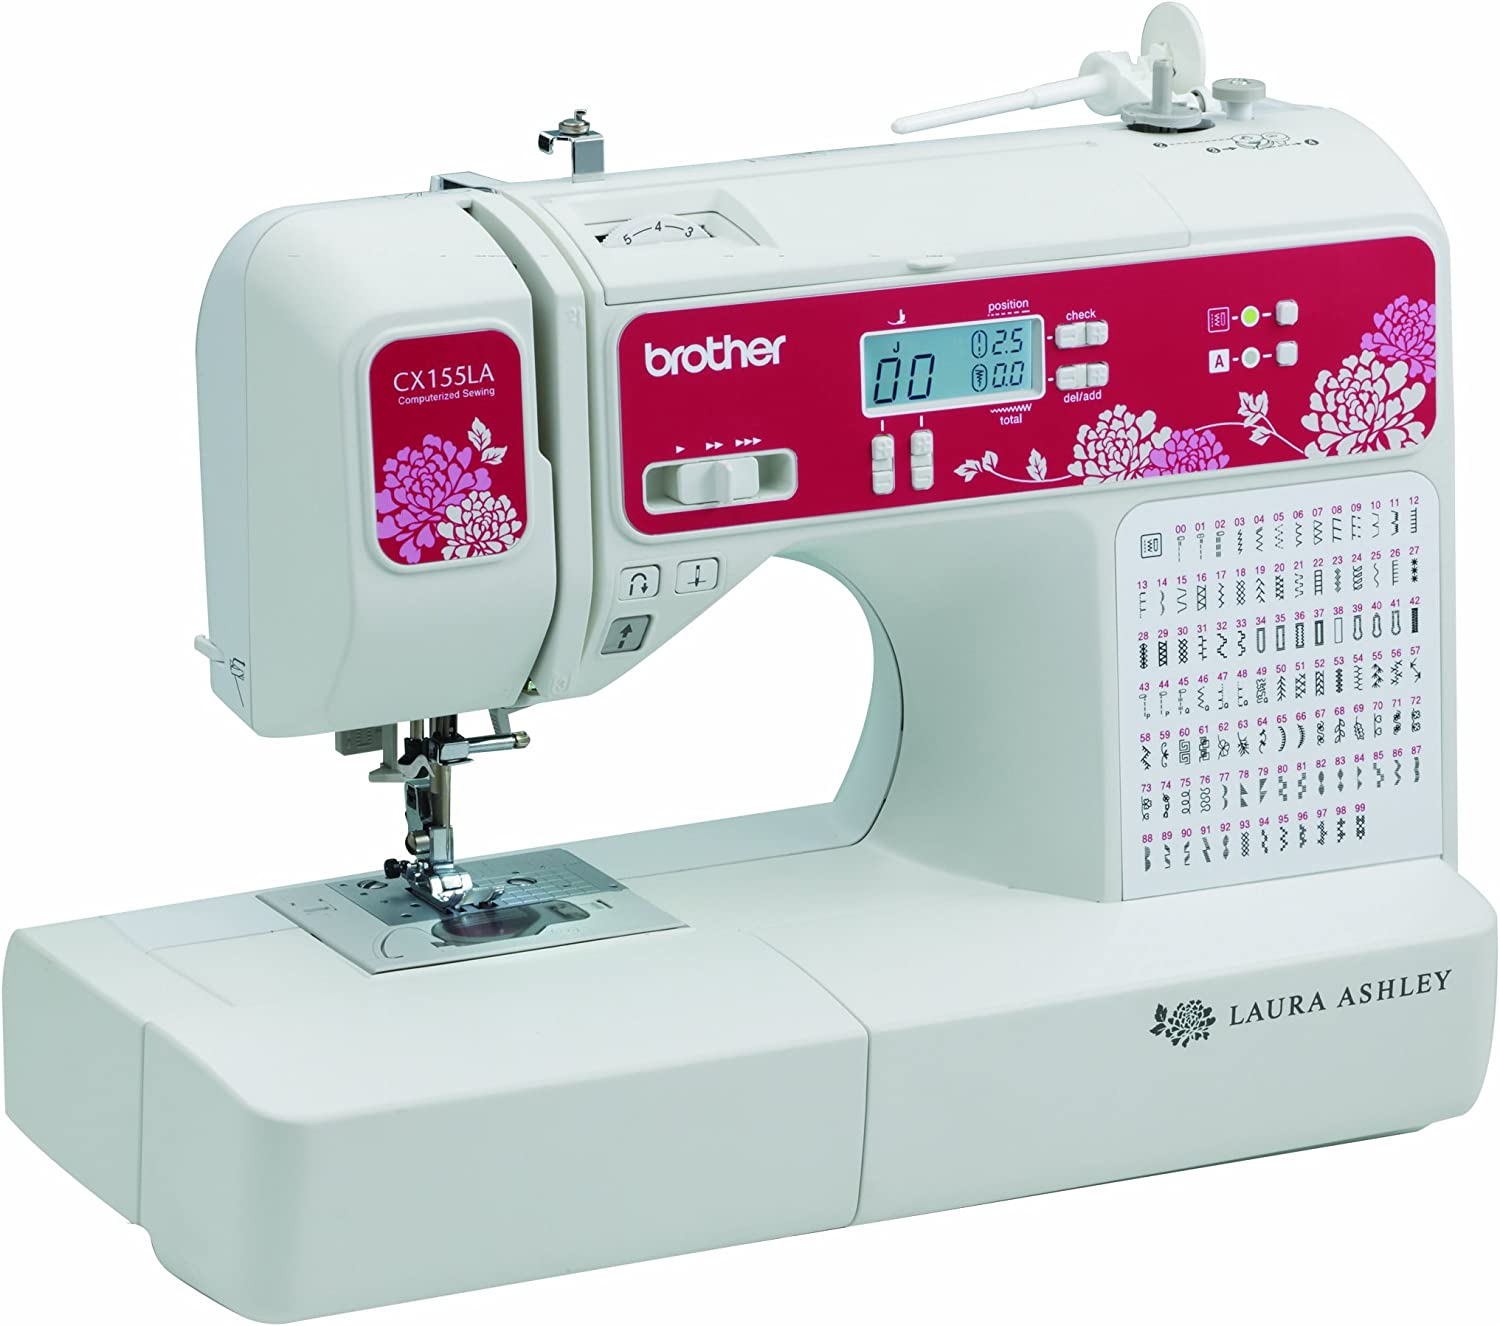 Top 8 Best Sewing Machine For Quilting Reviews in 2020 7